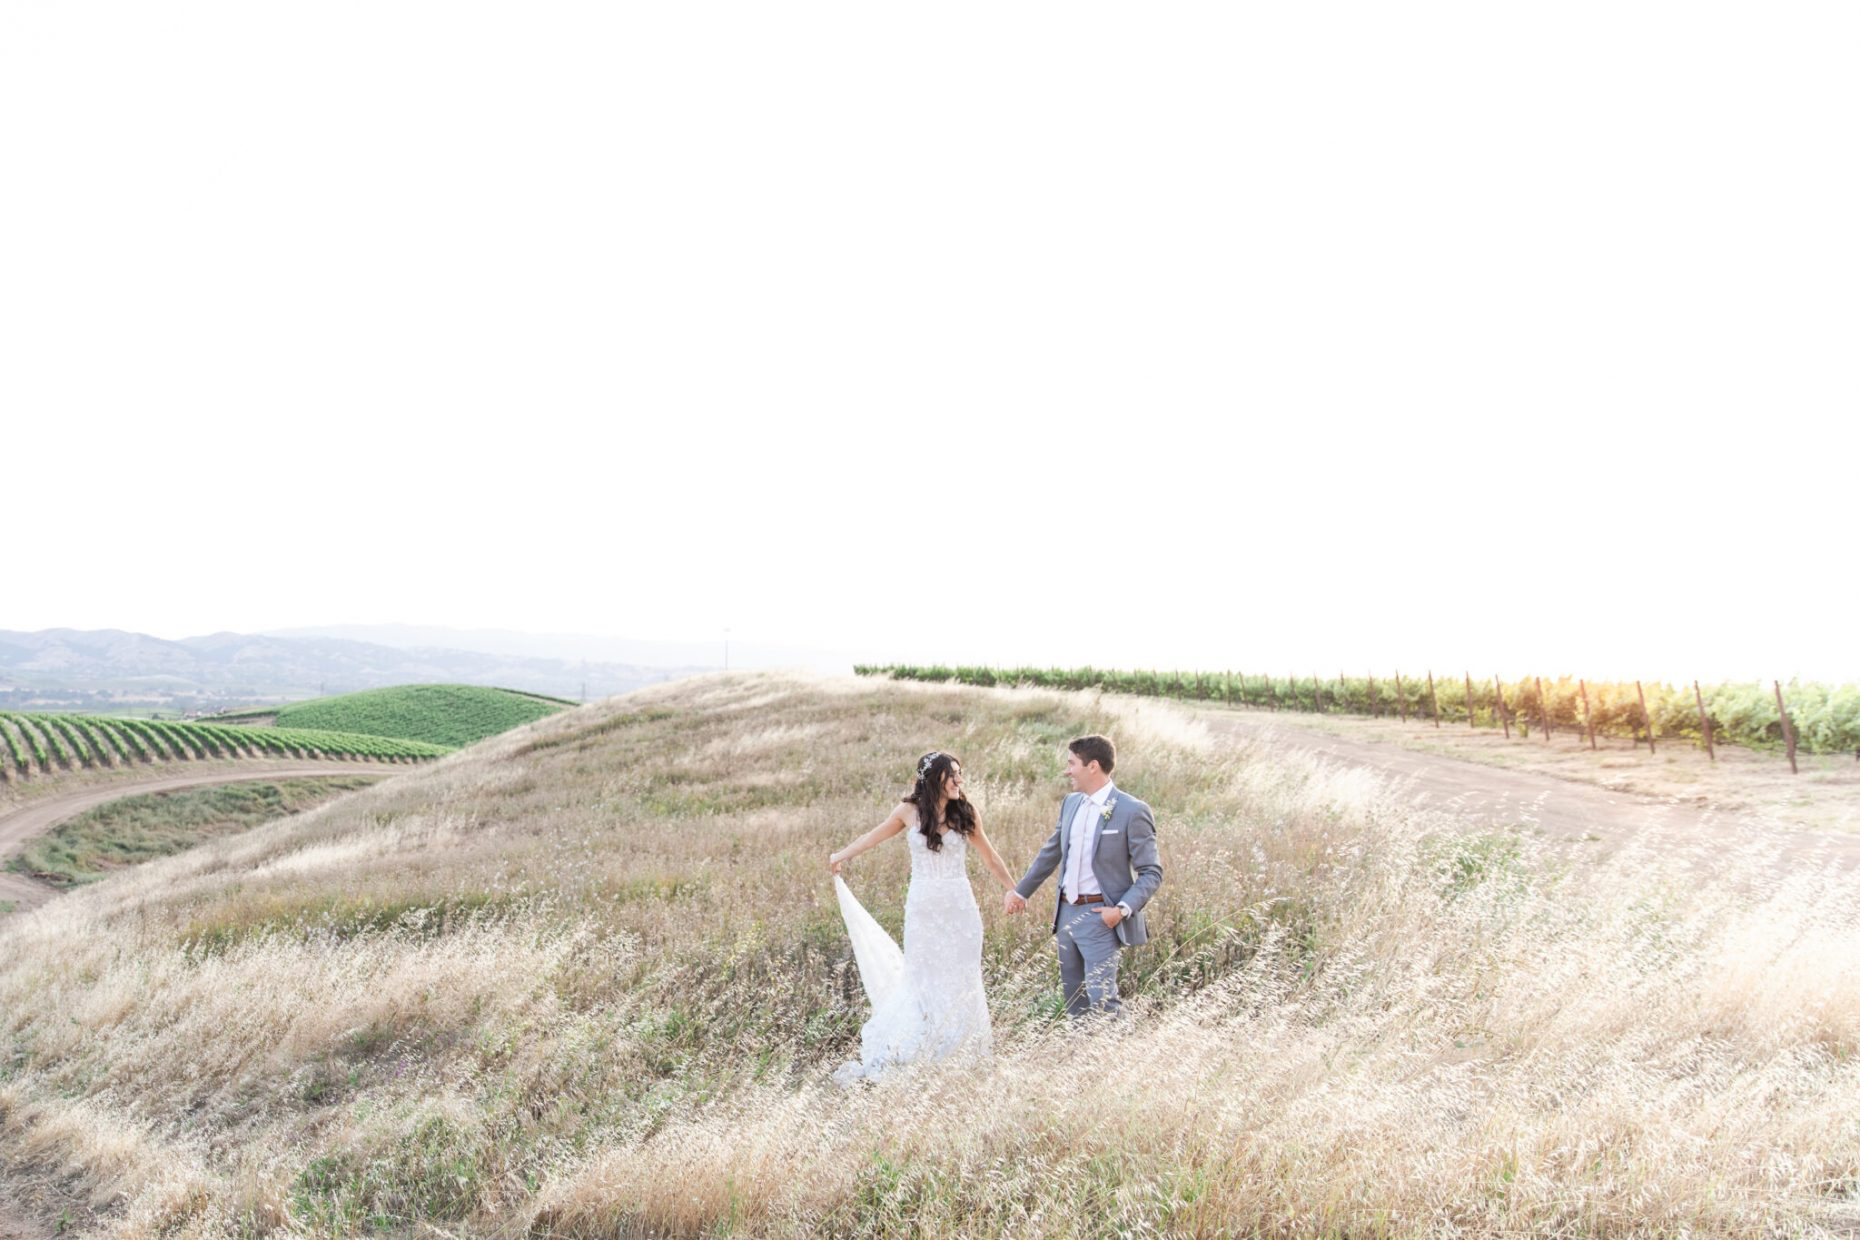 Bride and Groom dancing in a field of vineyards